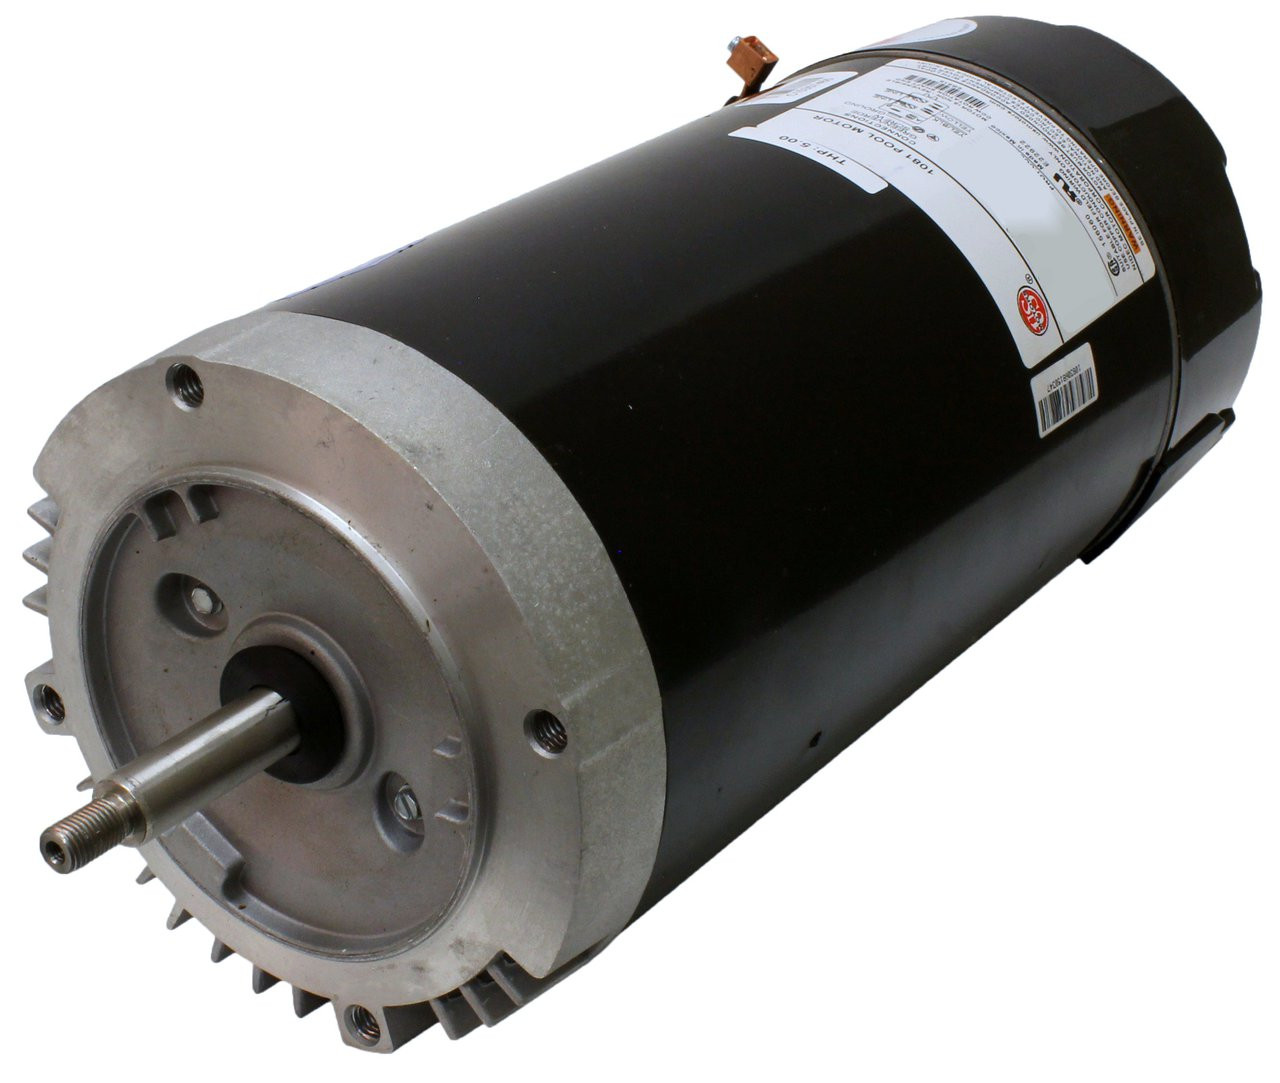 small resolution of 1 hp 3450 rpm 56j frame 115 230v switchless swimming pool pump motor us electric